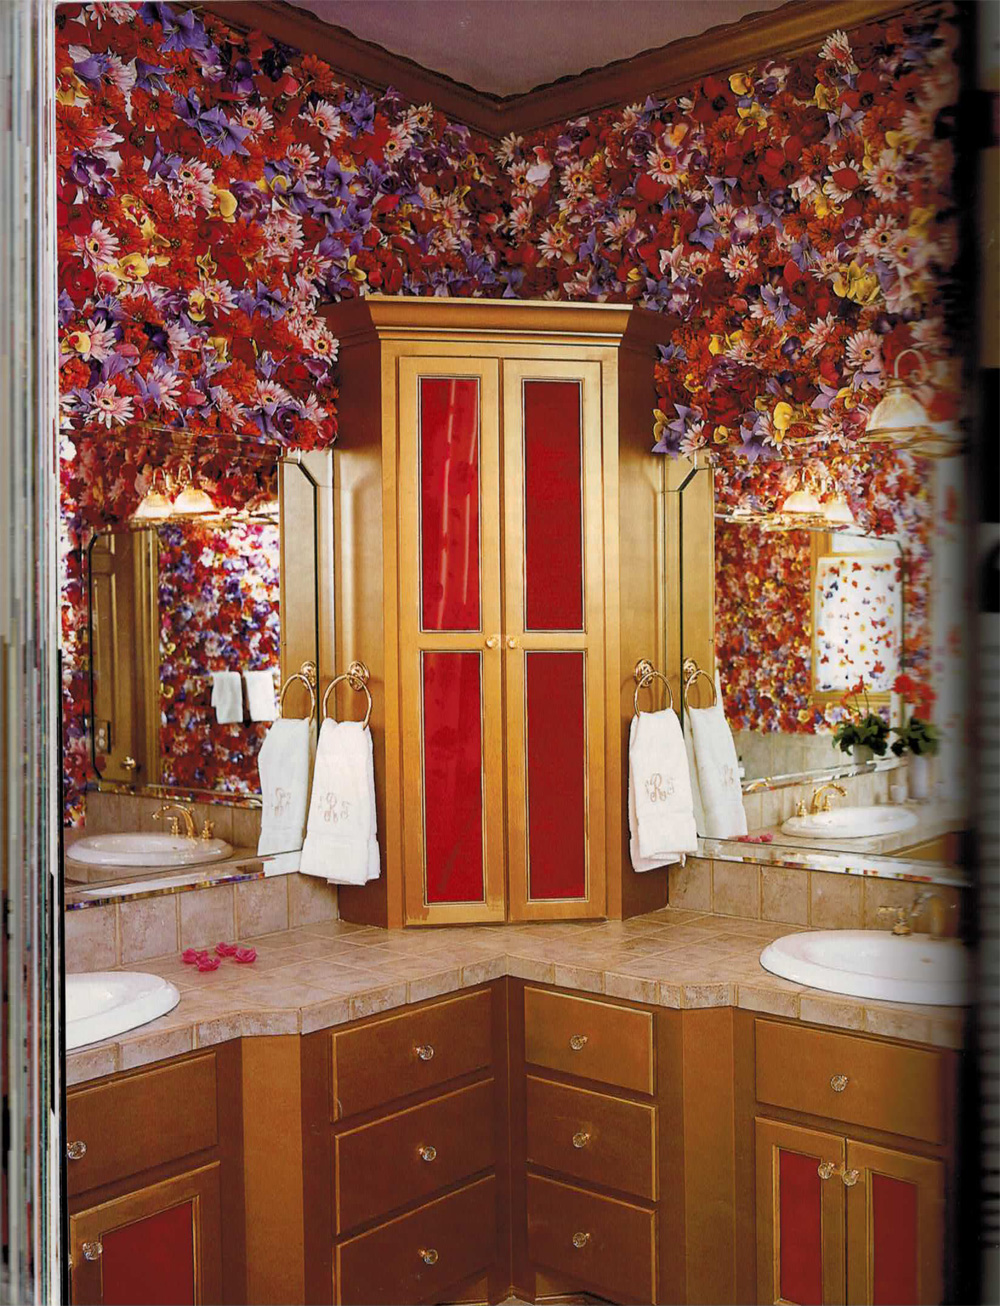 Trading Spaces flower walls in bathroom